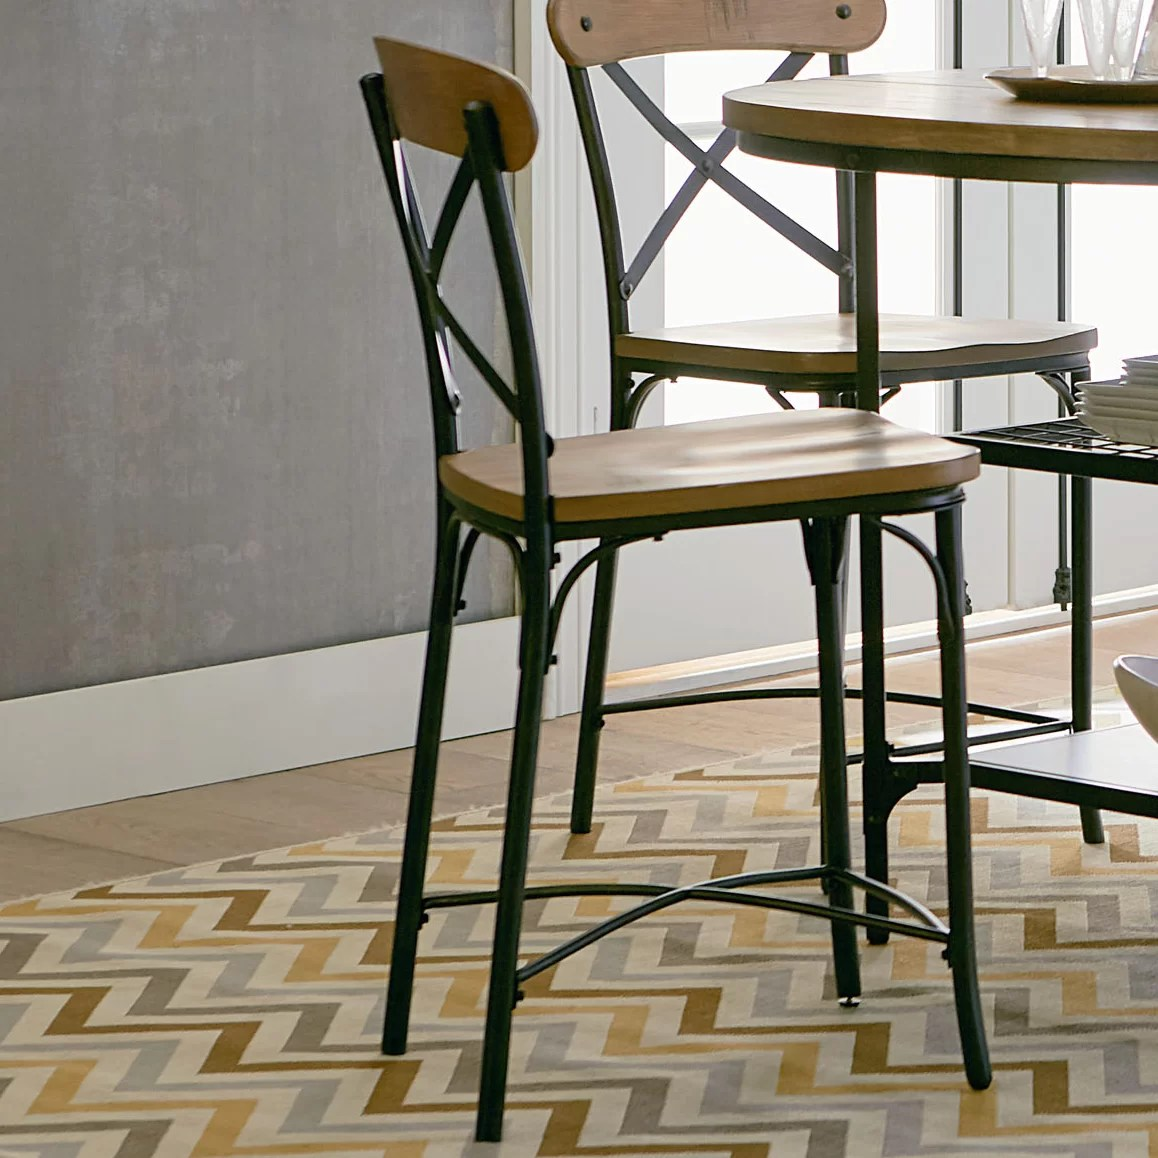 Where To Buy Bar Stools In Toronto Laurel Foundry Modern Farmhouse Emile 23 75 Quot Bar Stool